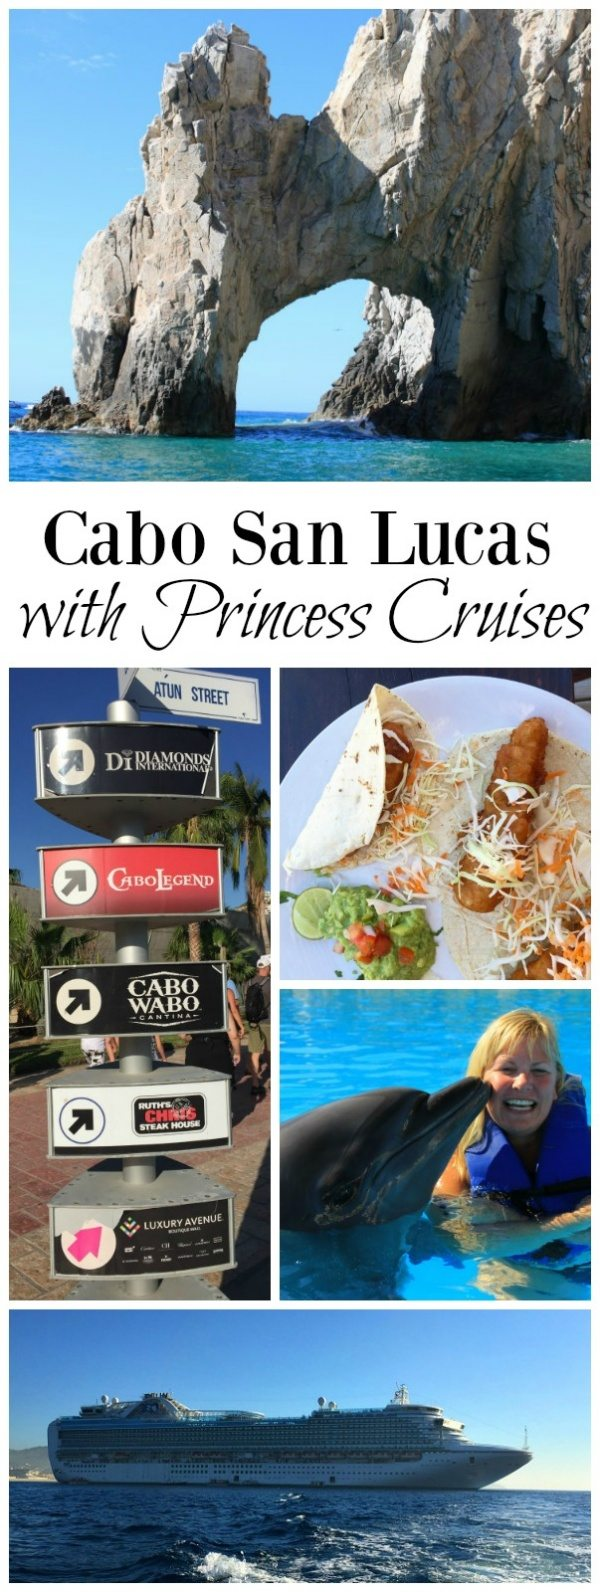 Princess Cruises Excursions in Cabo San Lucas, Mexico~ while traveling aboard the ship The Ruby Princess #ComeBackNew